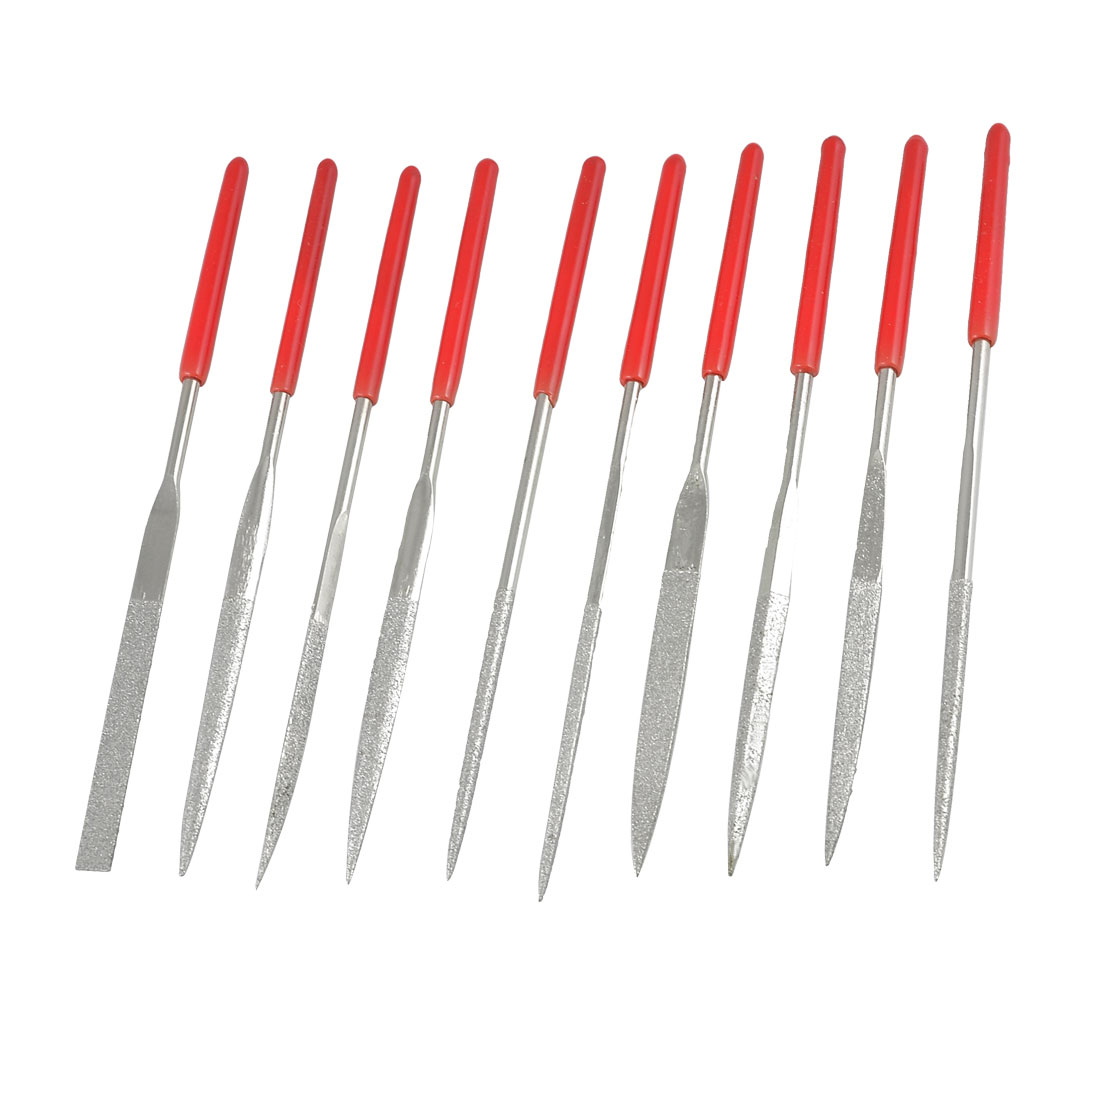 3mmx140mm Red Handgrip Equalling Square Round Triangle Diamond Needle Files 10 in 1